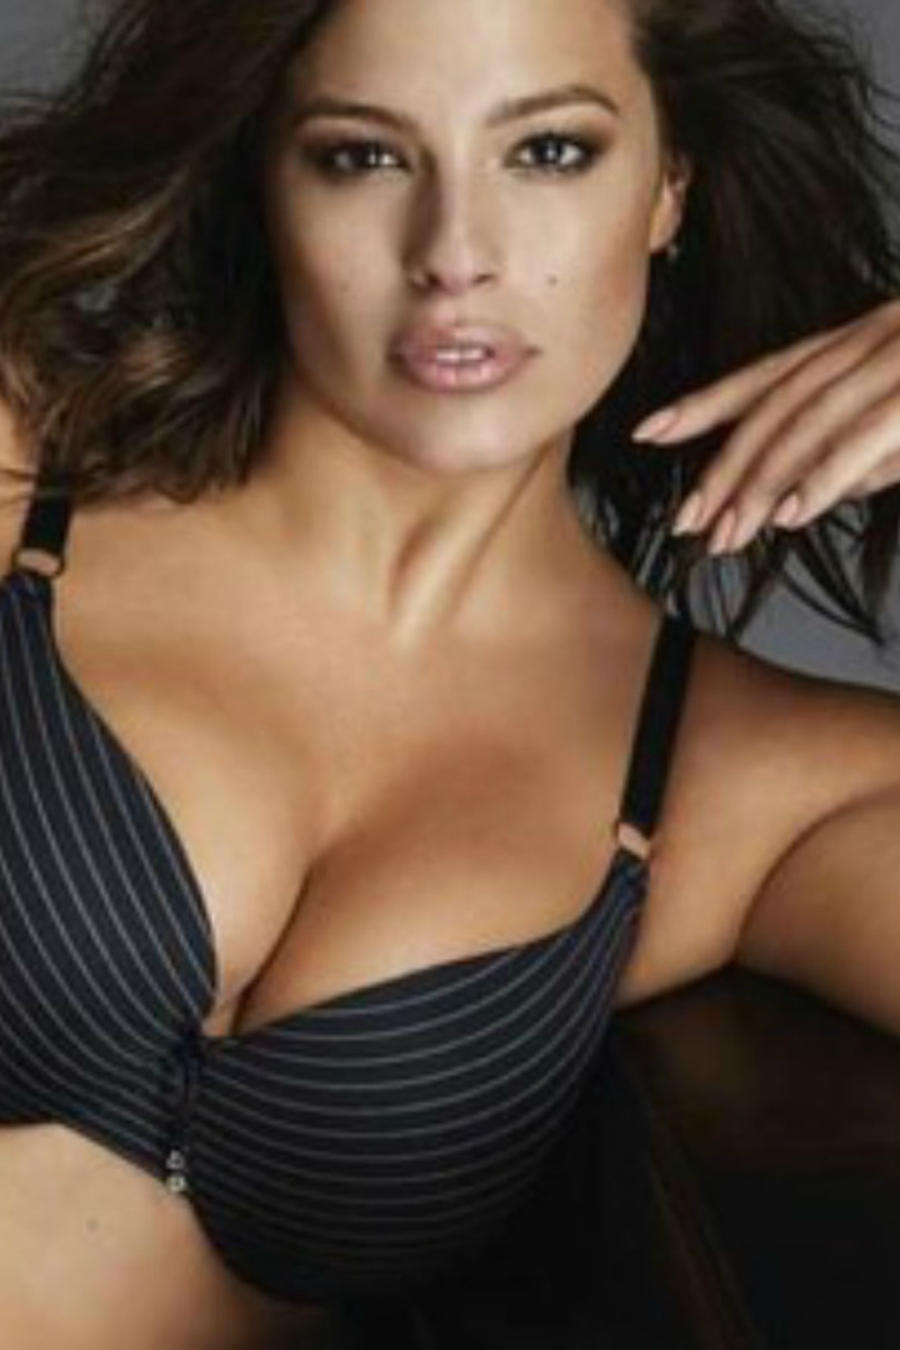 Ashley Graham ponsando sexy en un sillón